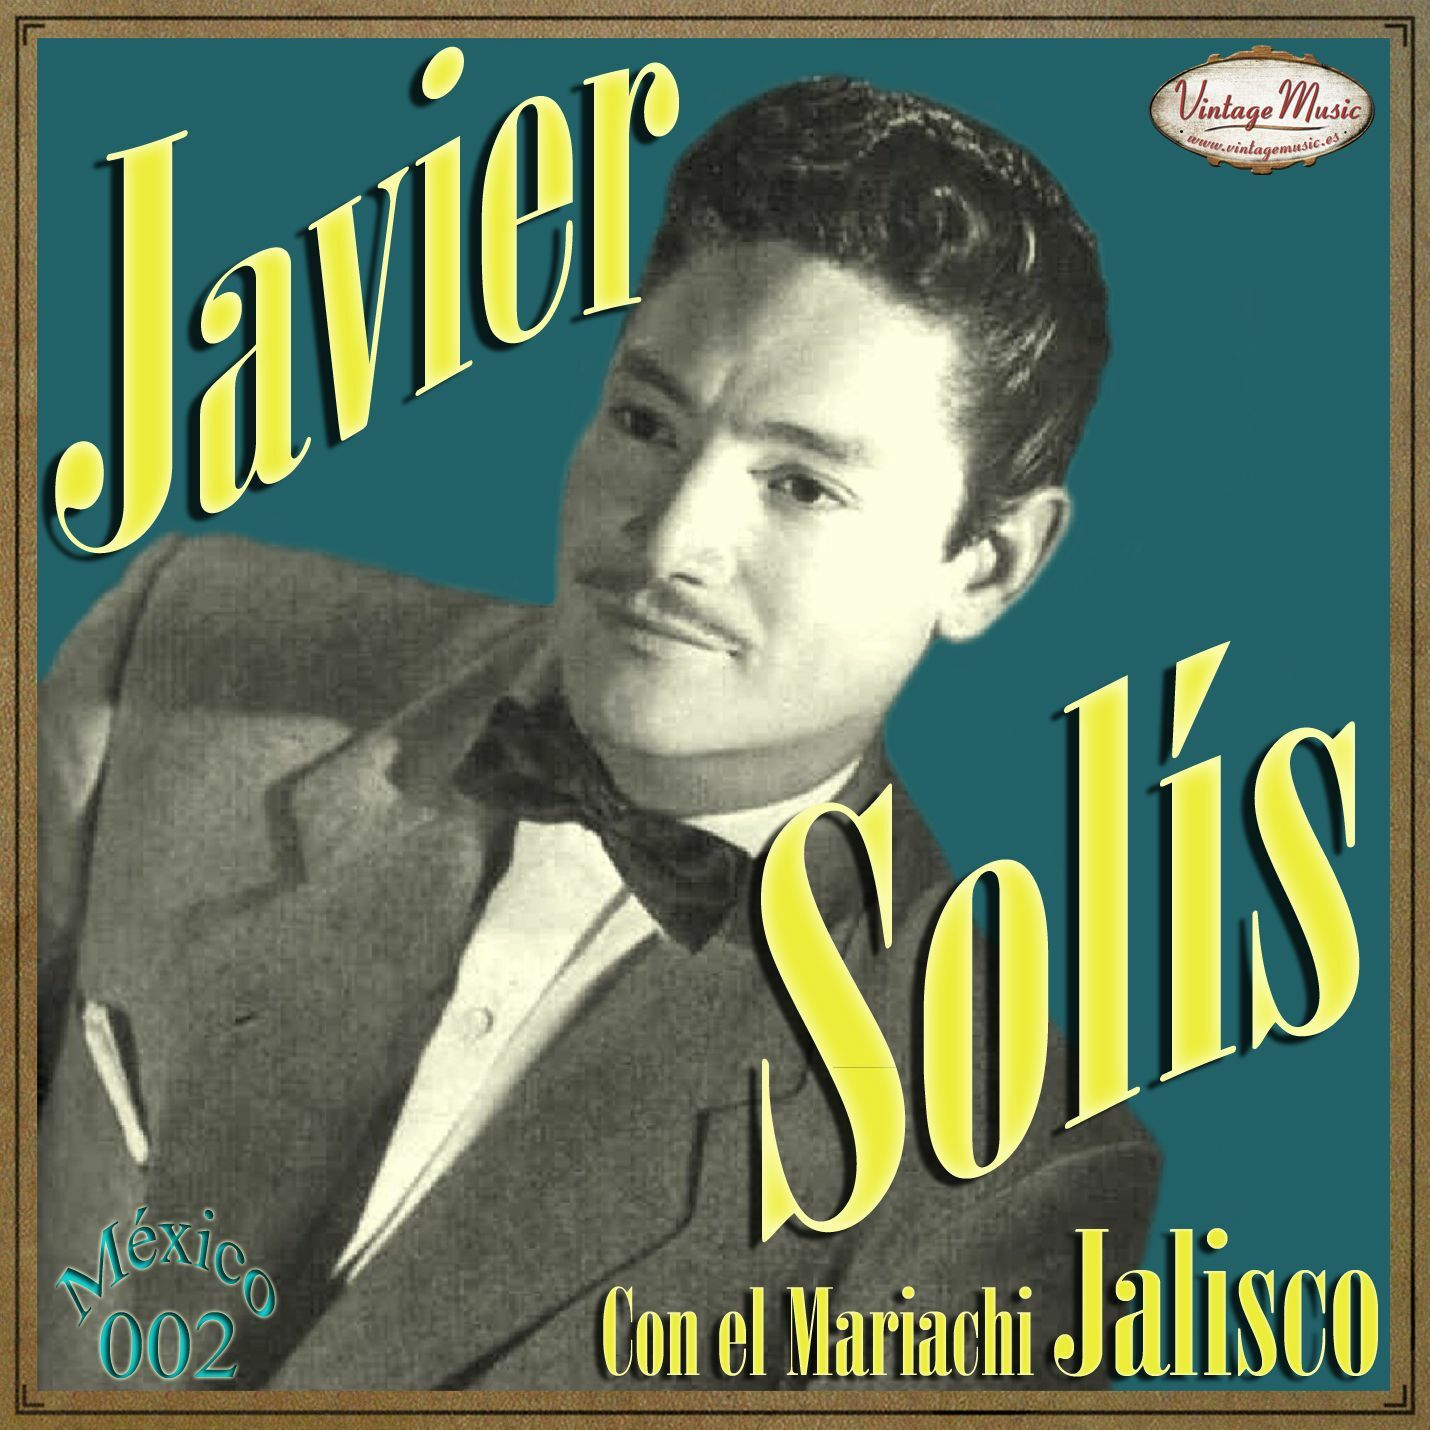 JAVIER SOLIS - JAVIER SOLIS Mexico Collection CD 2 Bolero Cancion Mariachi Jalisco. Ya No Me Quieres - CD